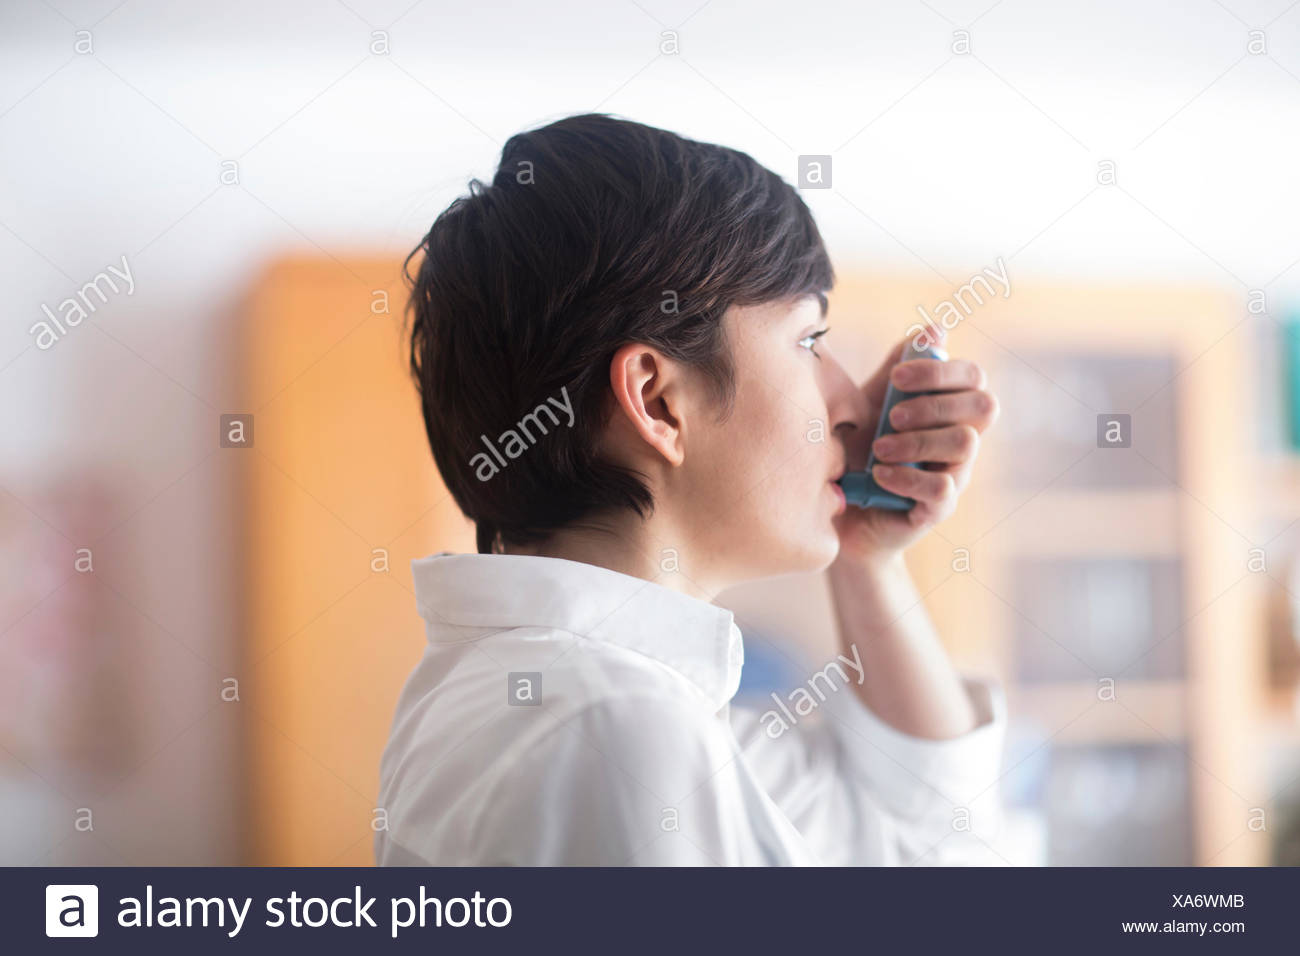 Young woman using inhaler - Stock Image